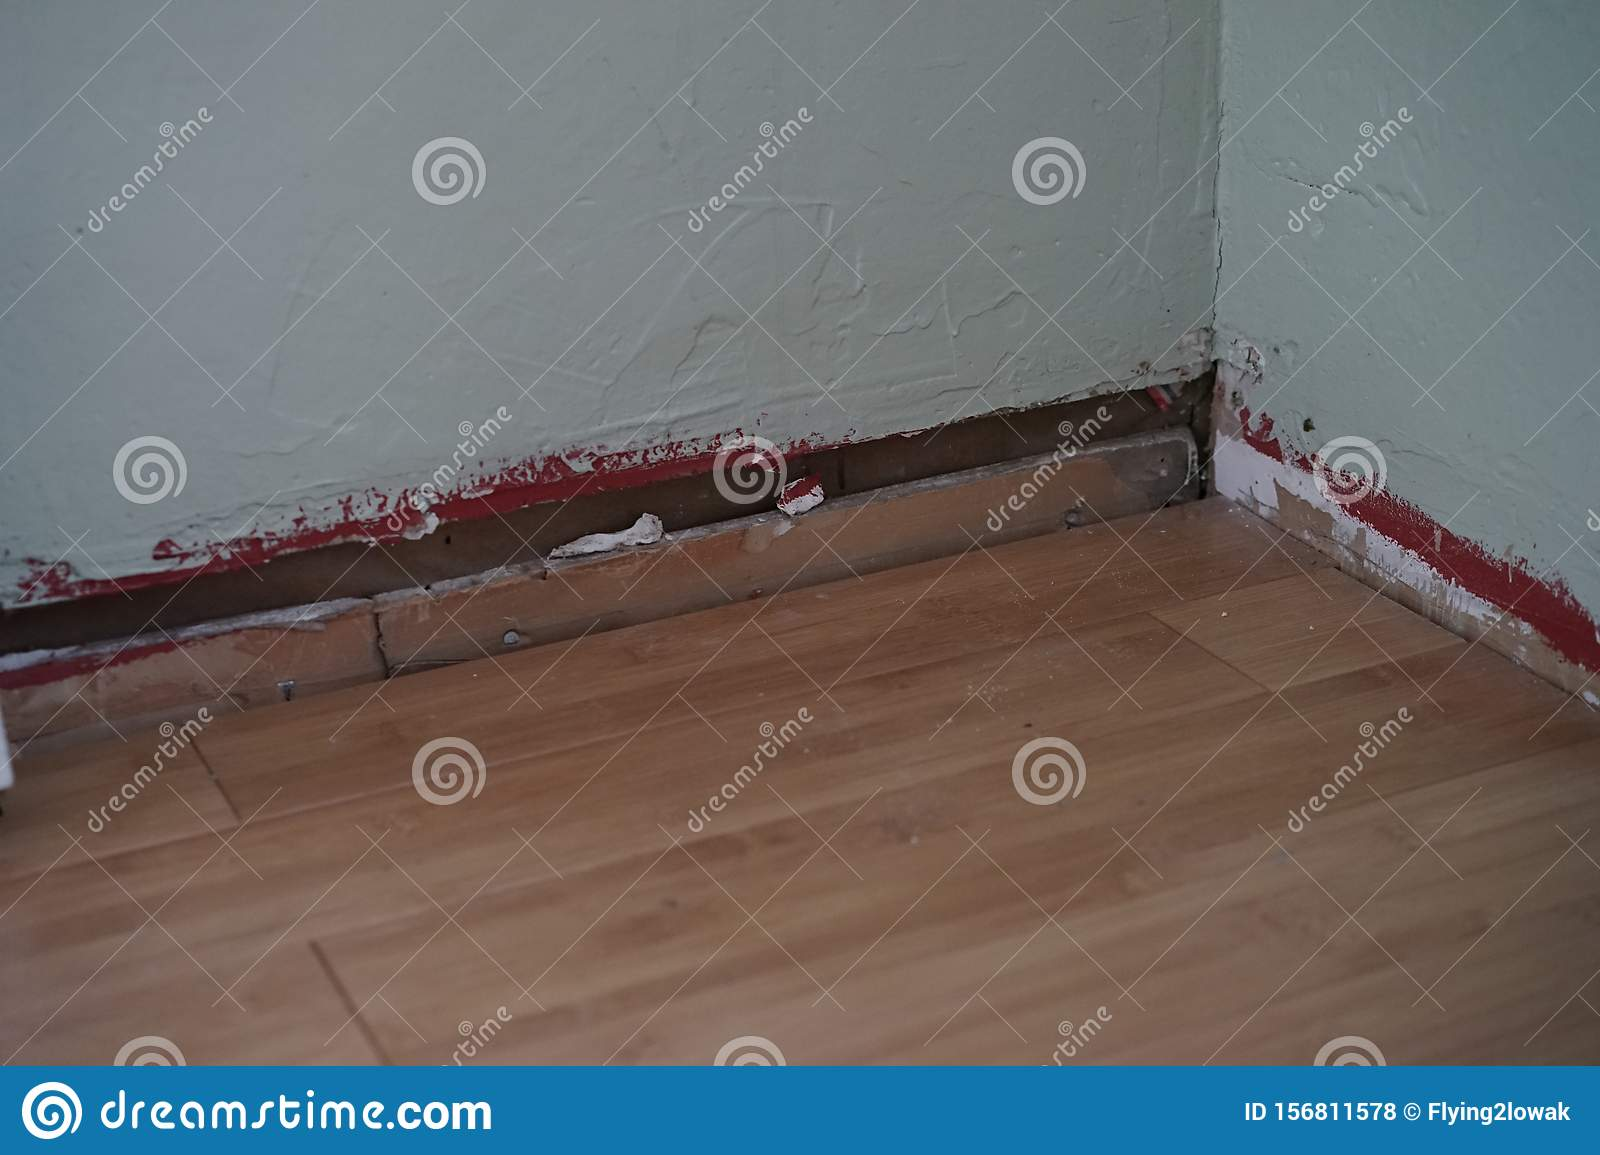 Wall And Floor With No Trim Attached To Wall Stock Photo Image Of Angles Build 156811578